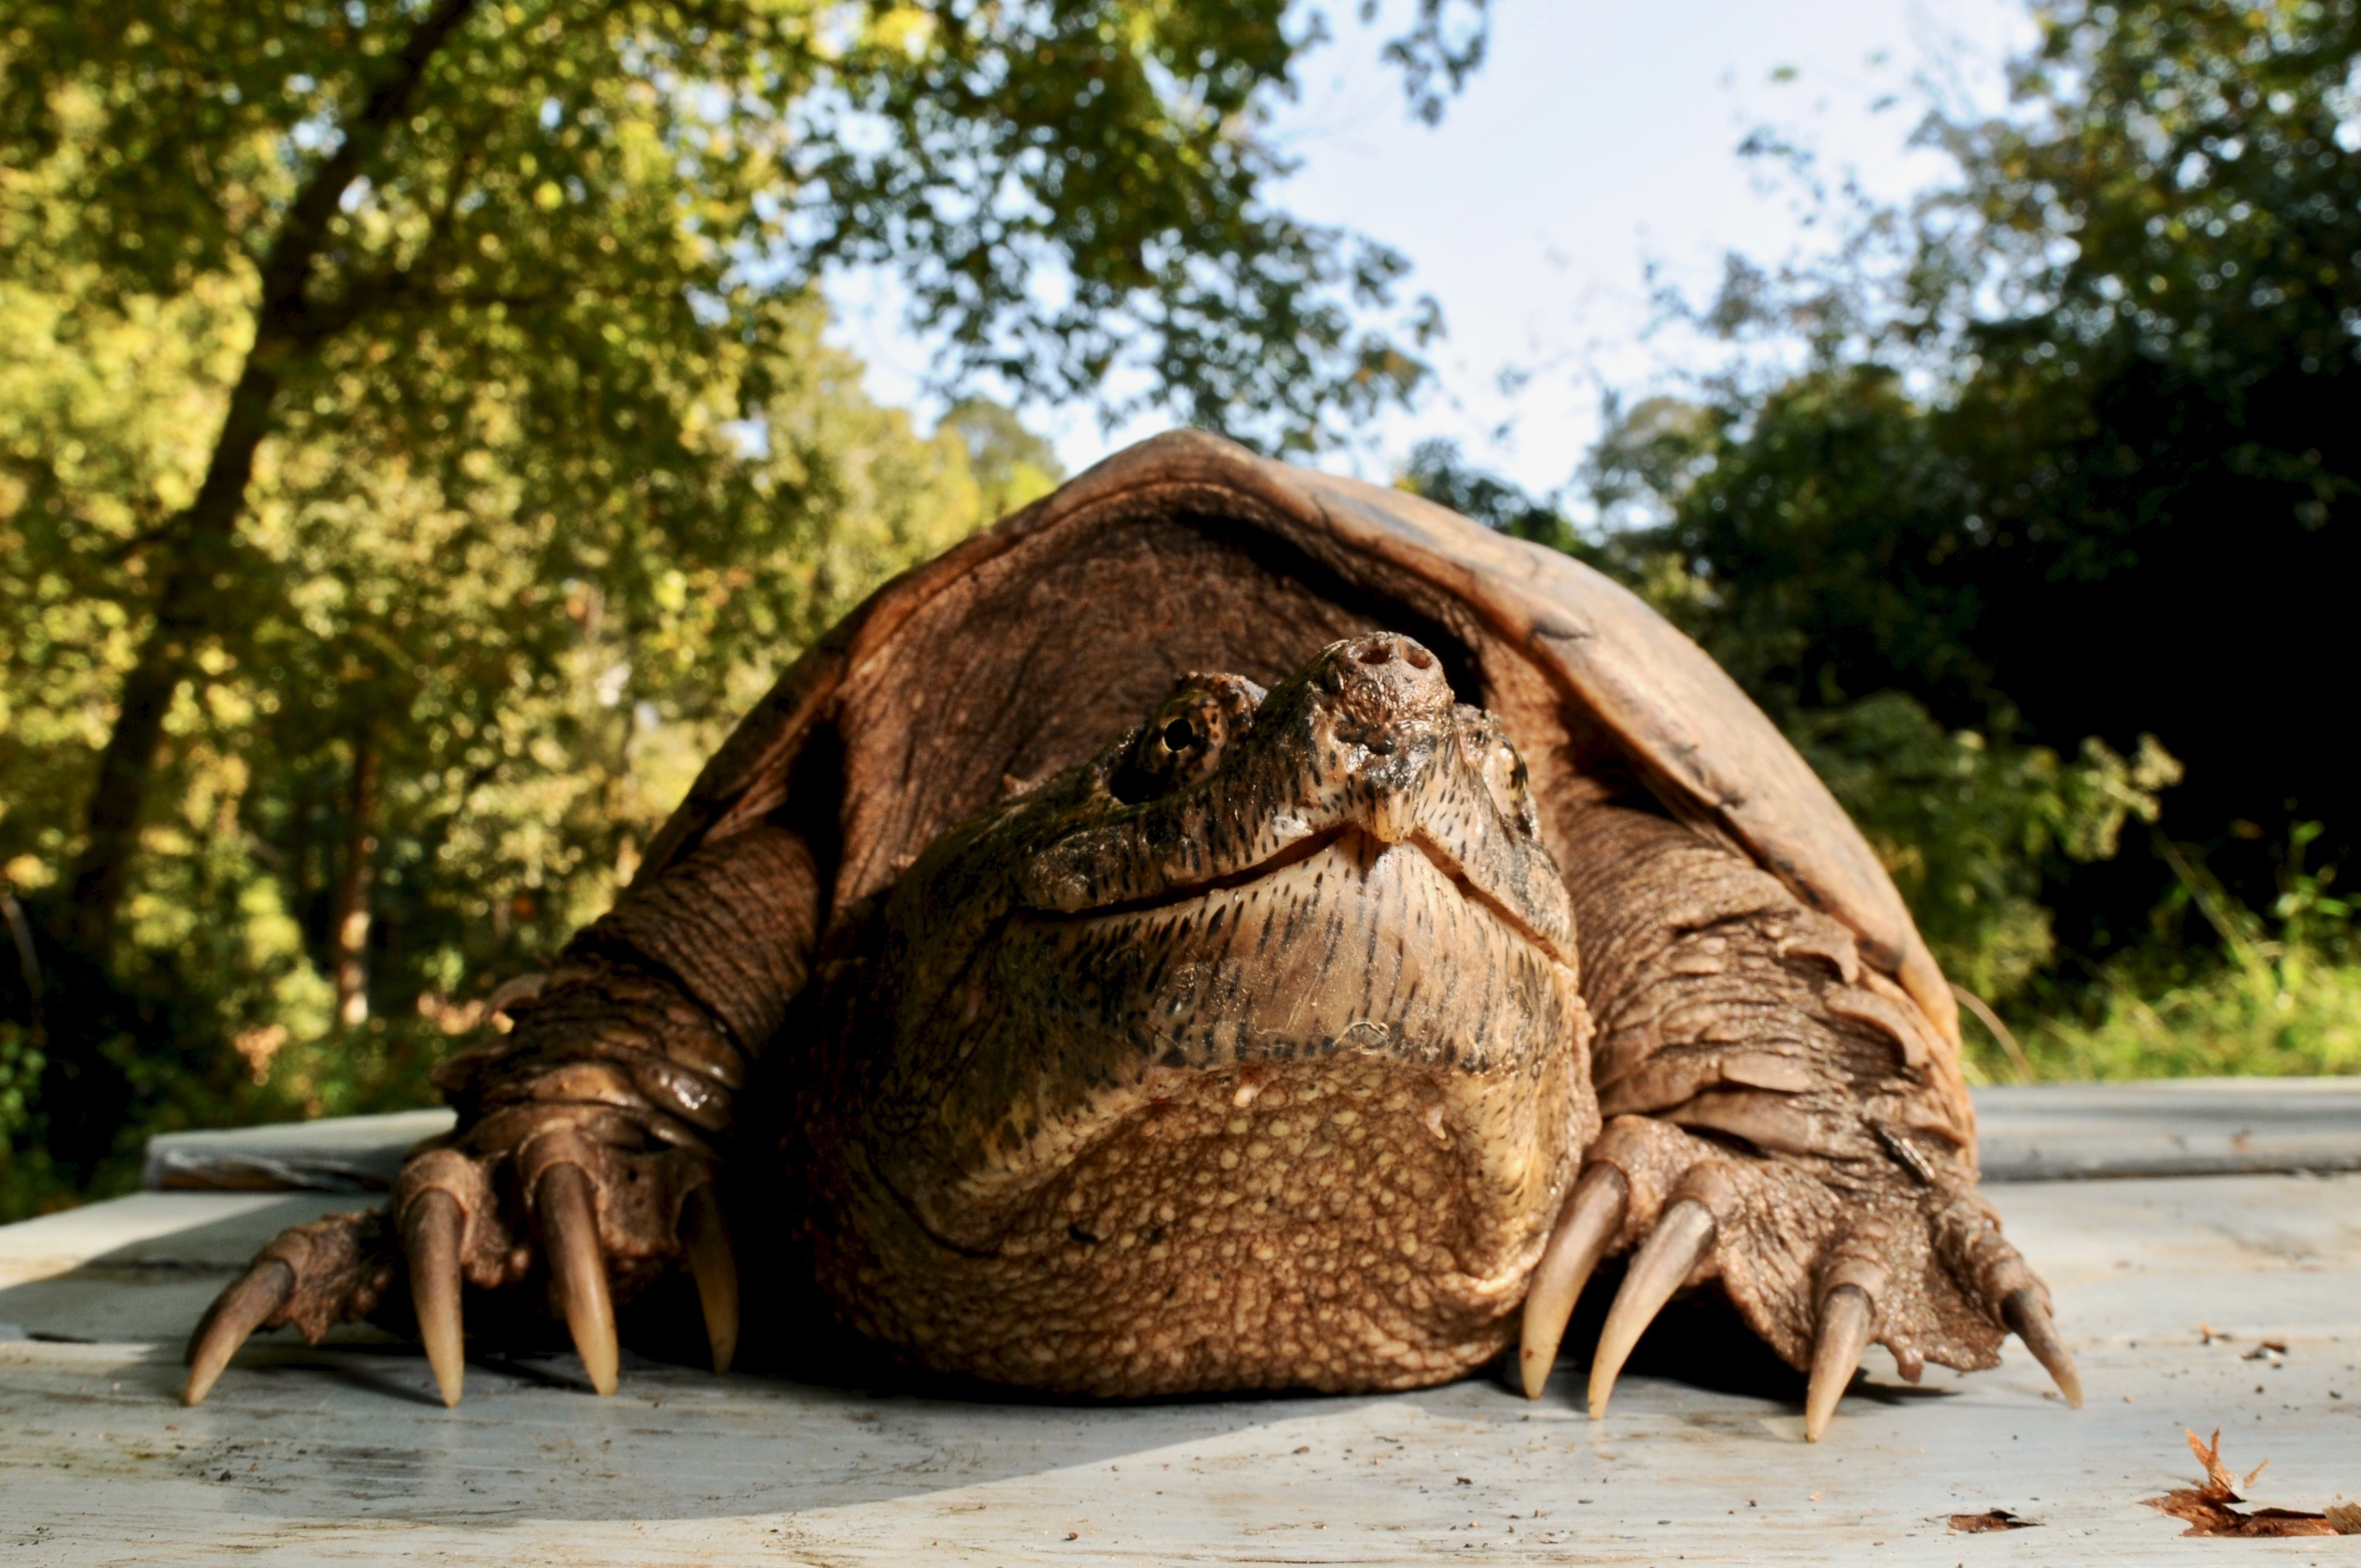 Common Snapping Turtle 107